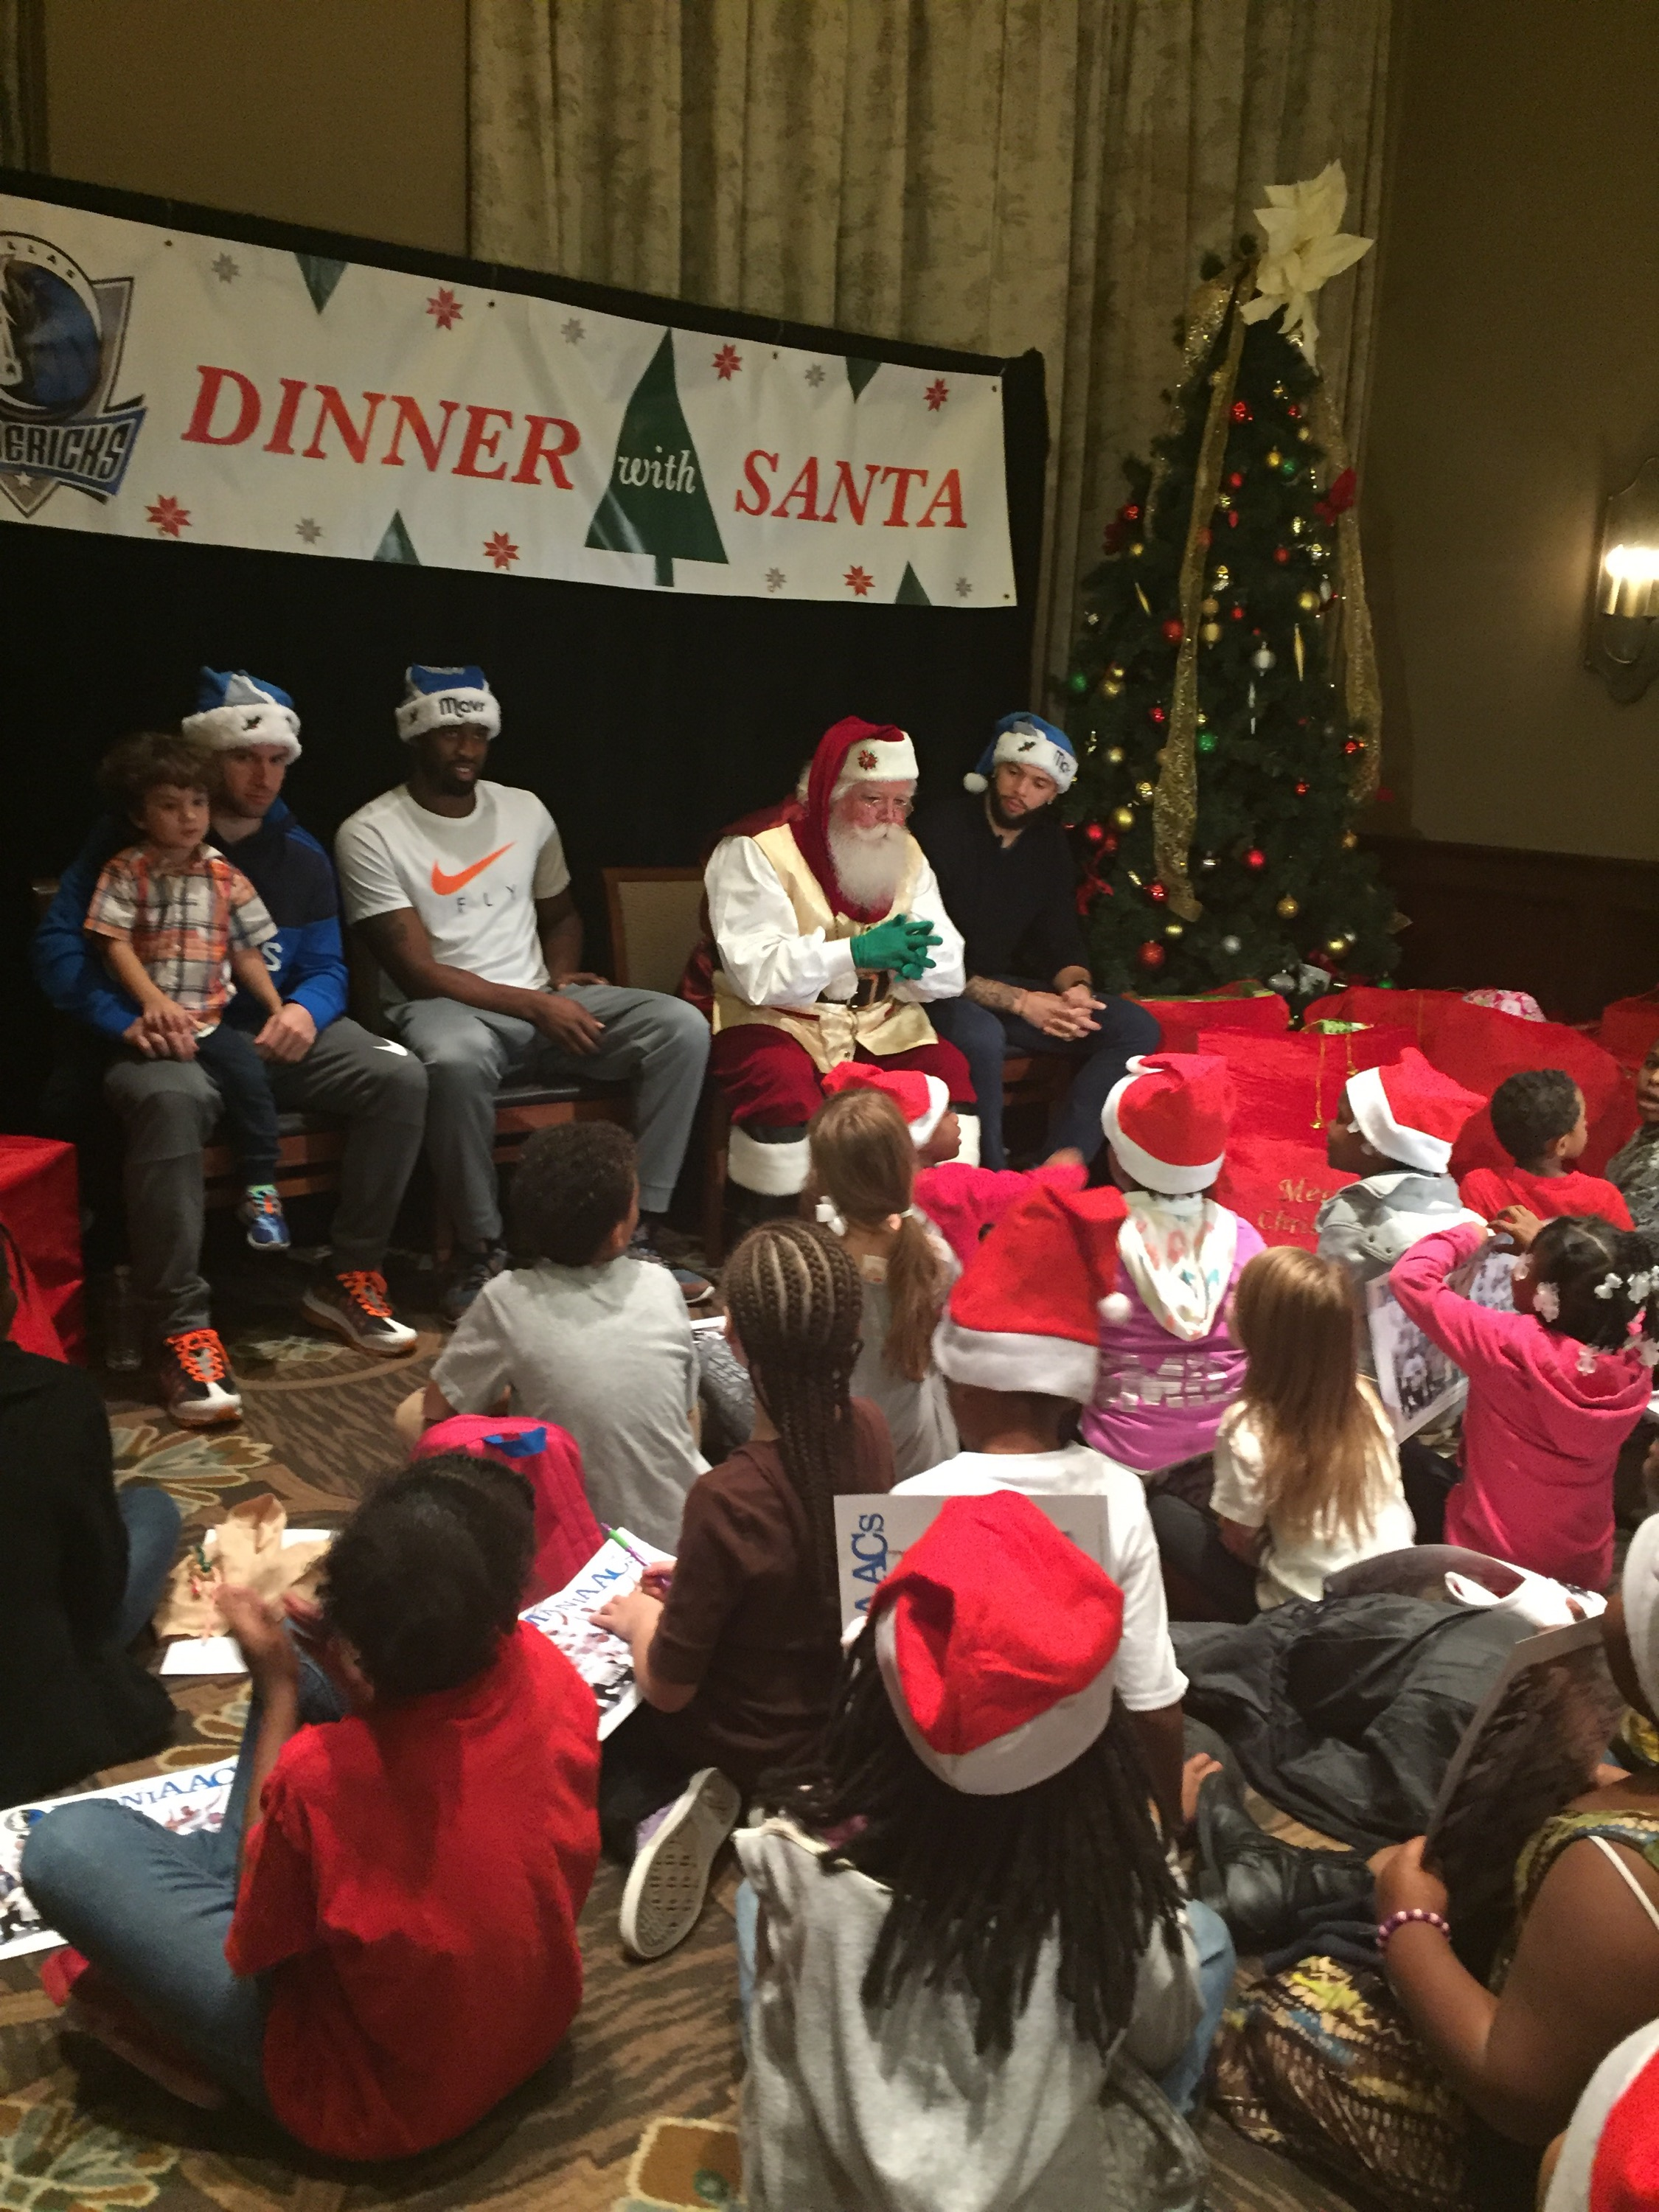 Dallas Mavericks Dinner with Santa